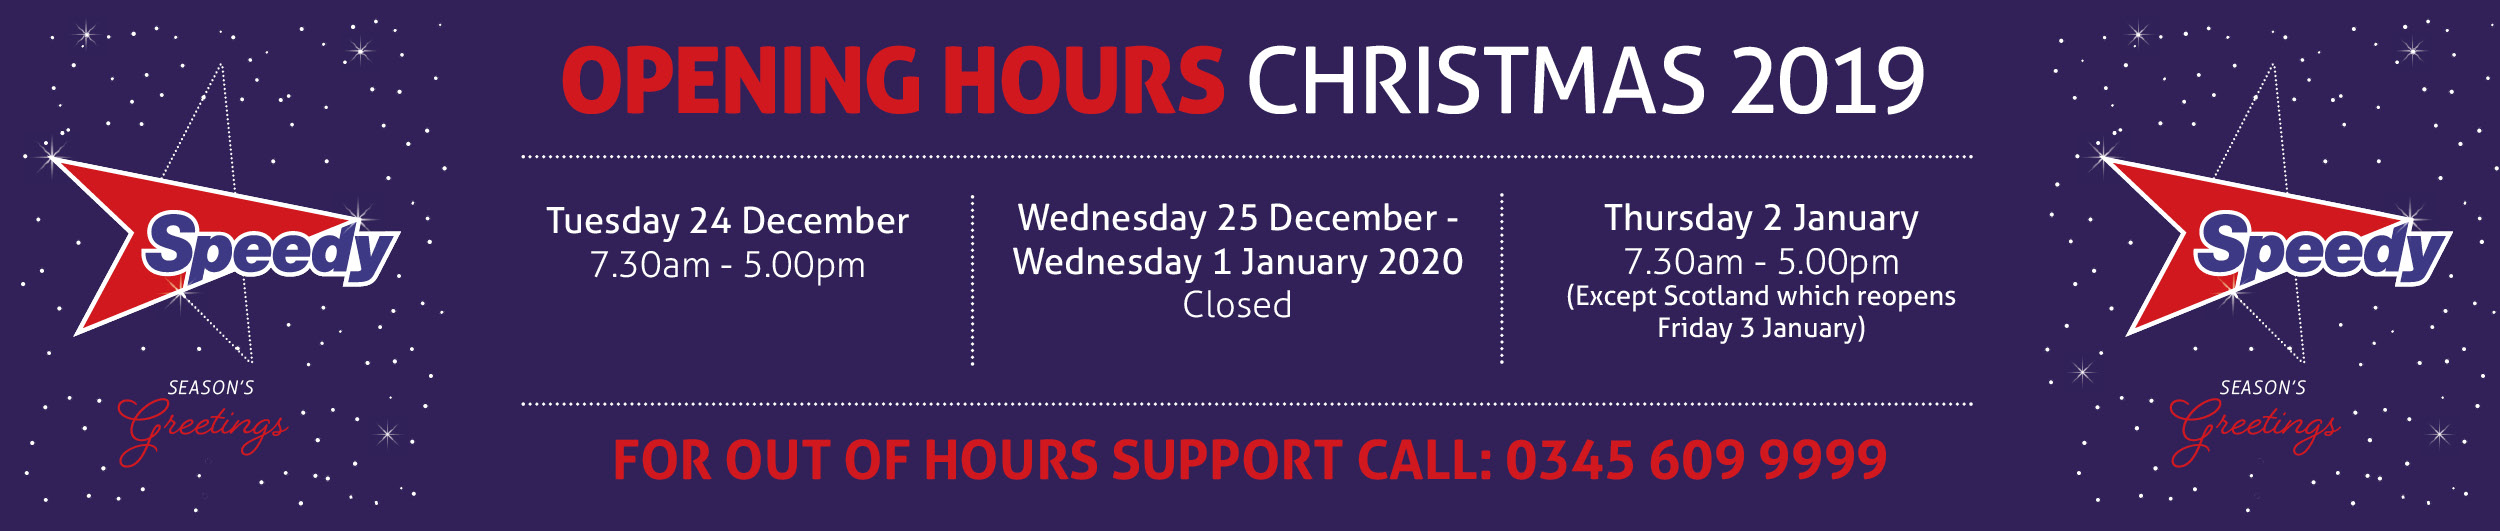 Christmas Opening Times Web banner-new.jpg